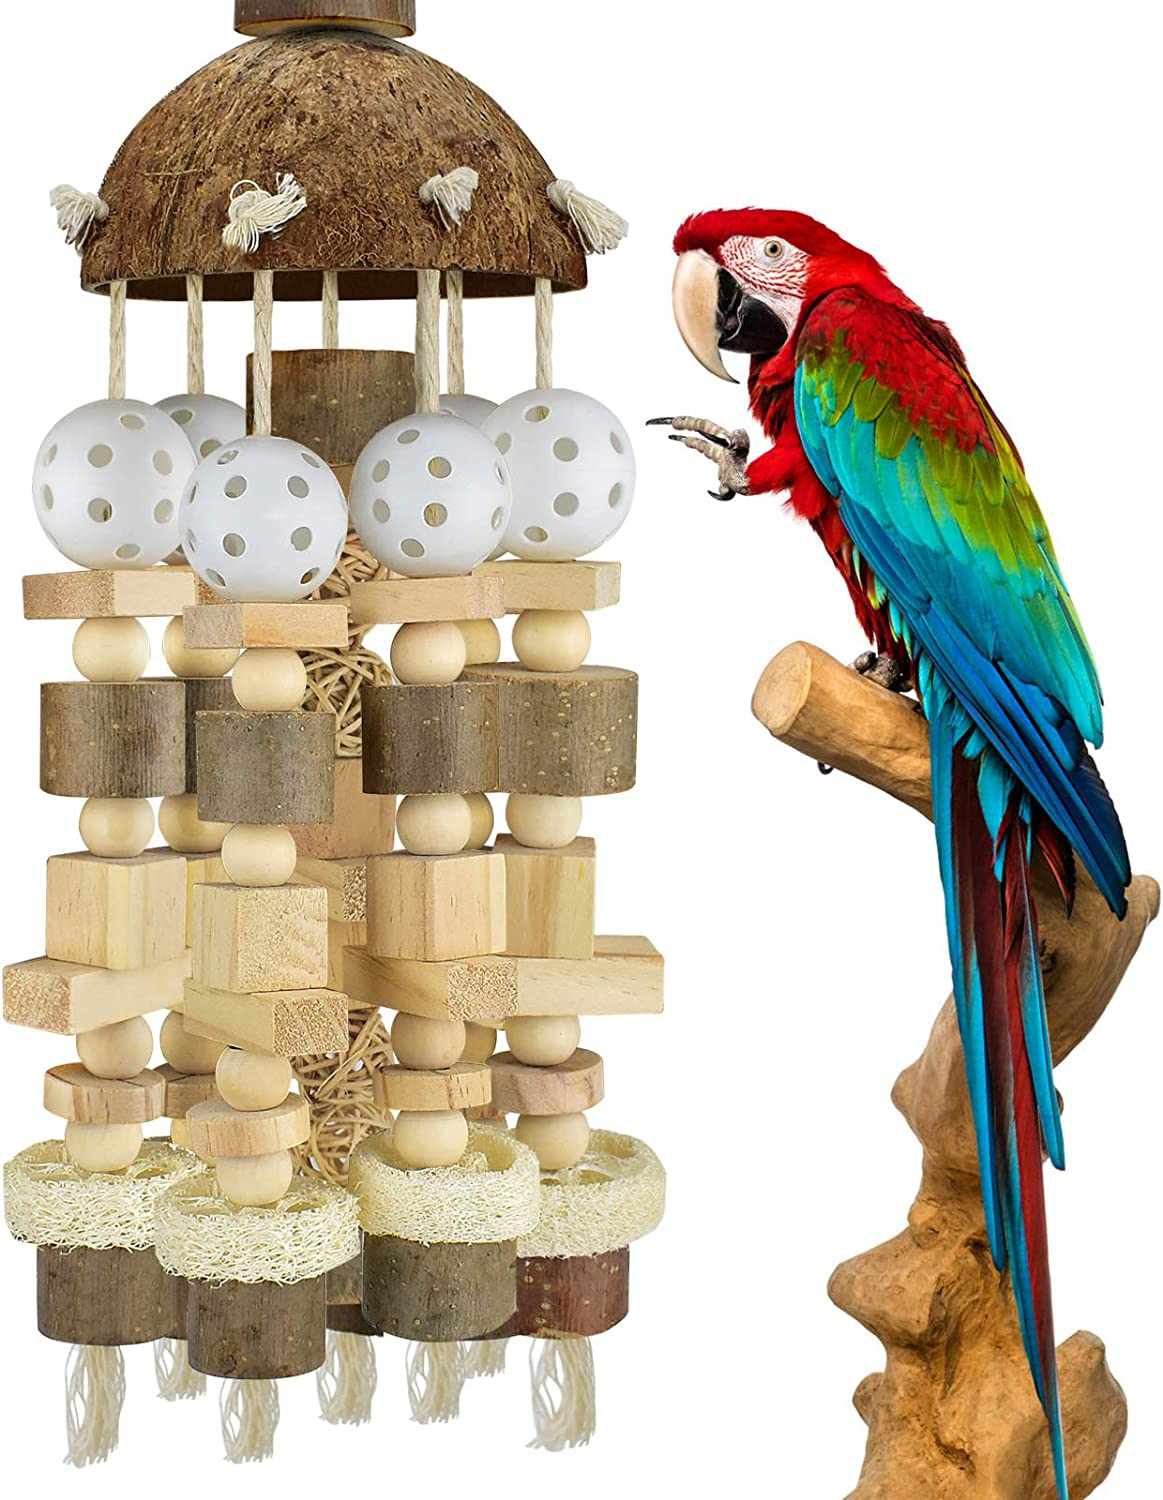 KATUMO Bird Parrot Toy, Large Parrot Toy Natural Wooden Blocks Bird Chewing Toy Parrot Cage Bite Toy Suits for African Grey Cockatoos Amazon Parrots Ect Large Medium Parrot Birds